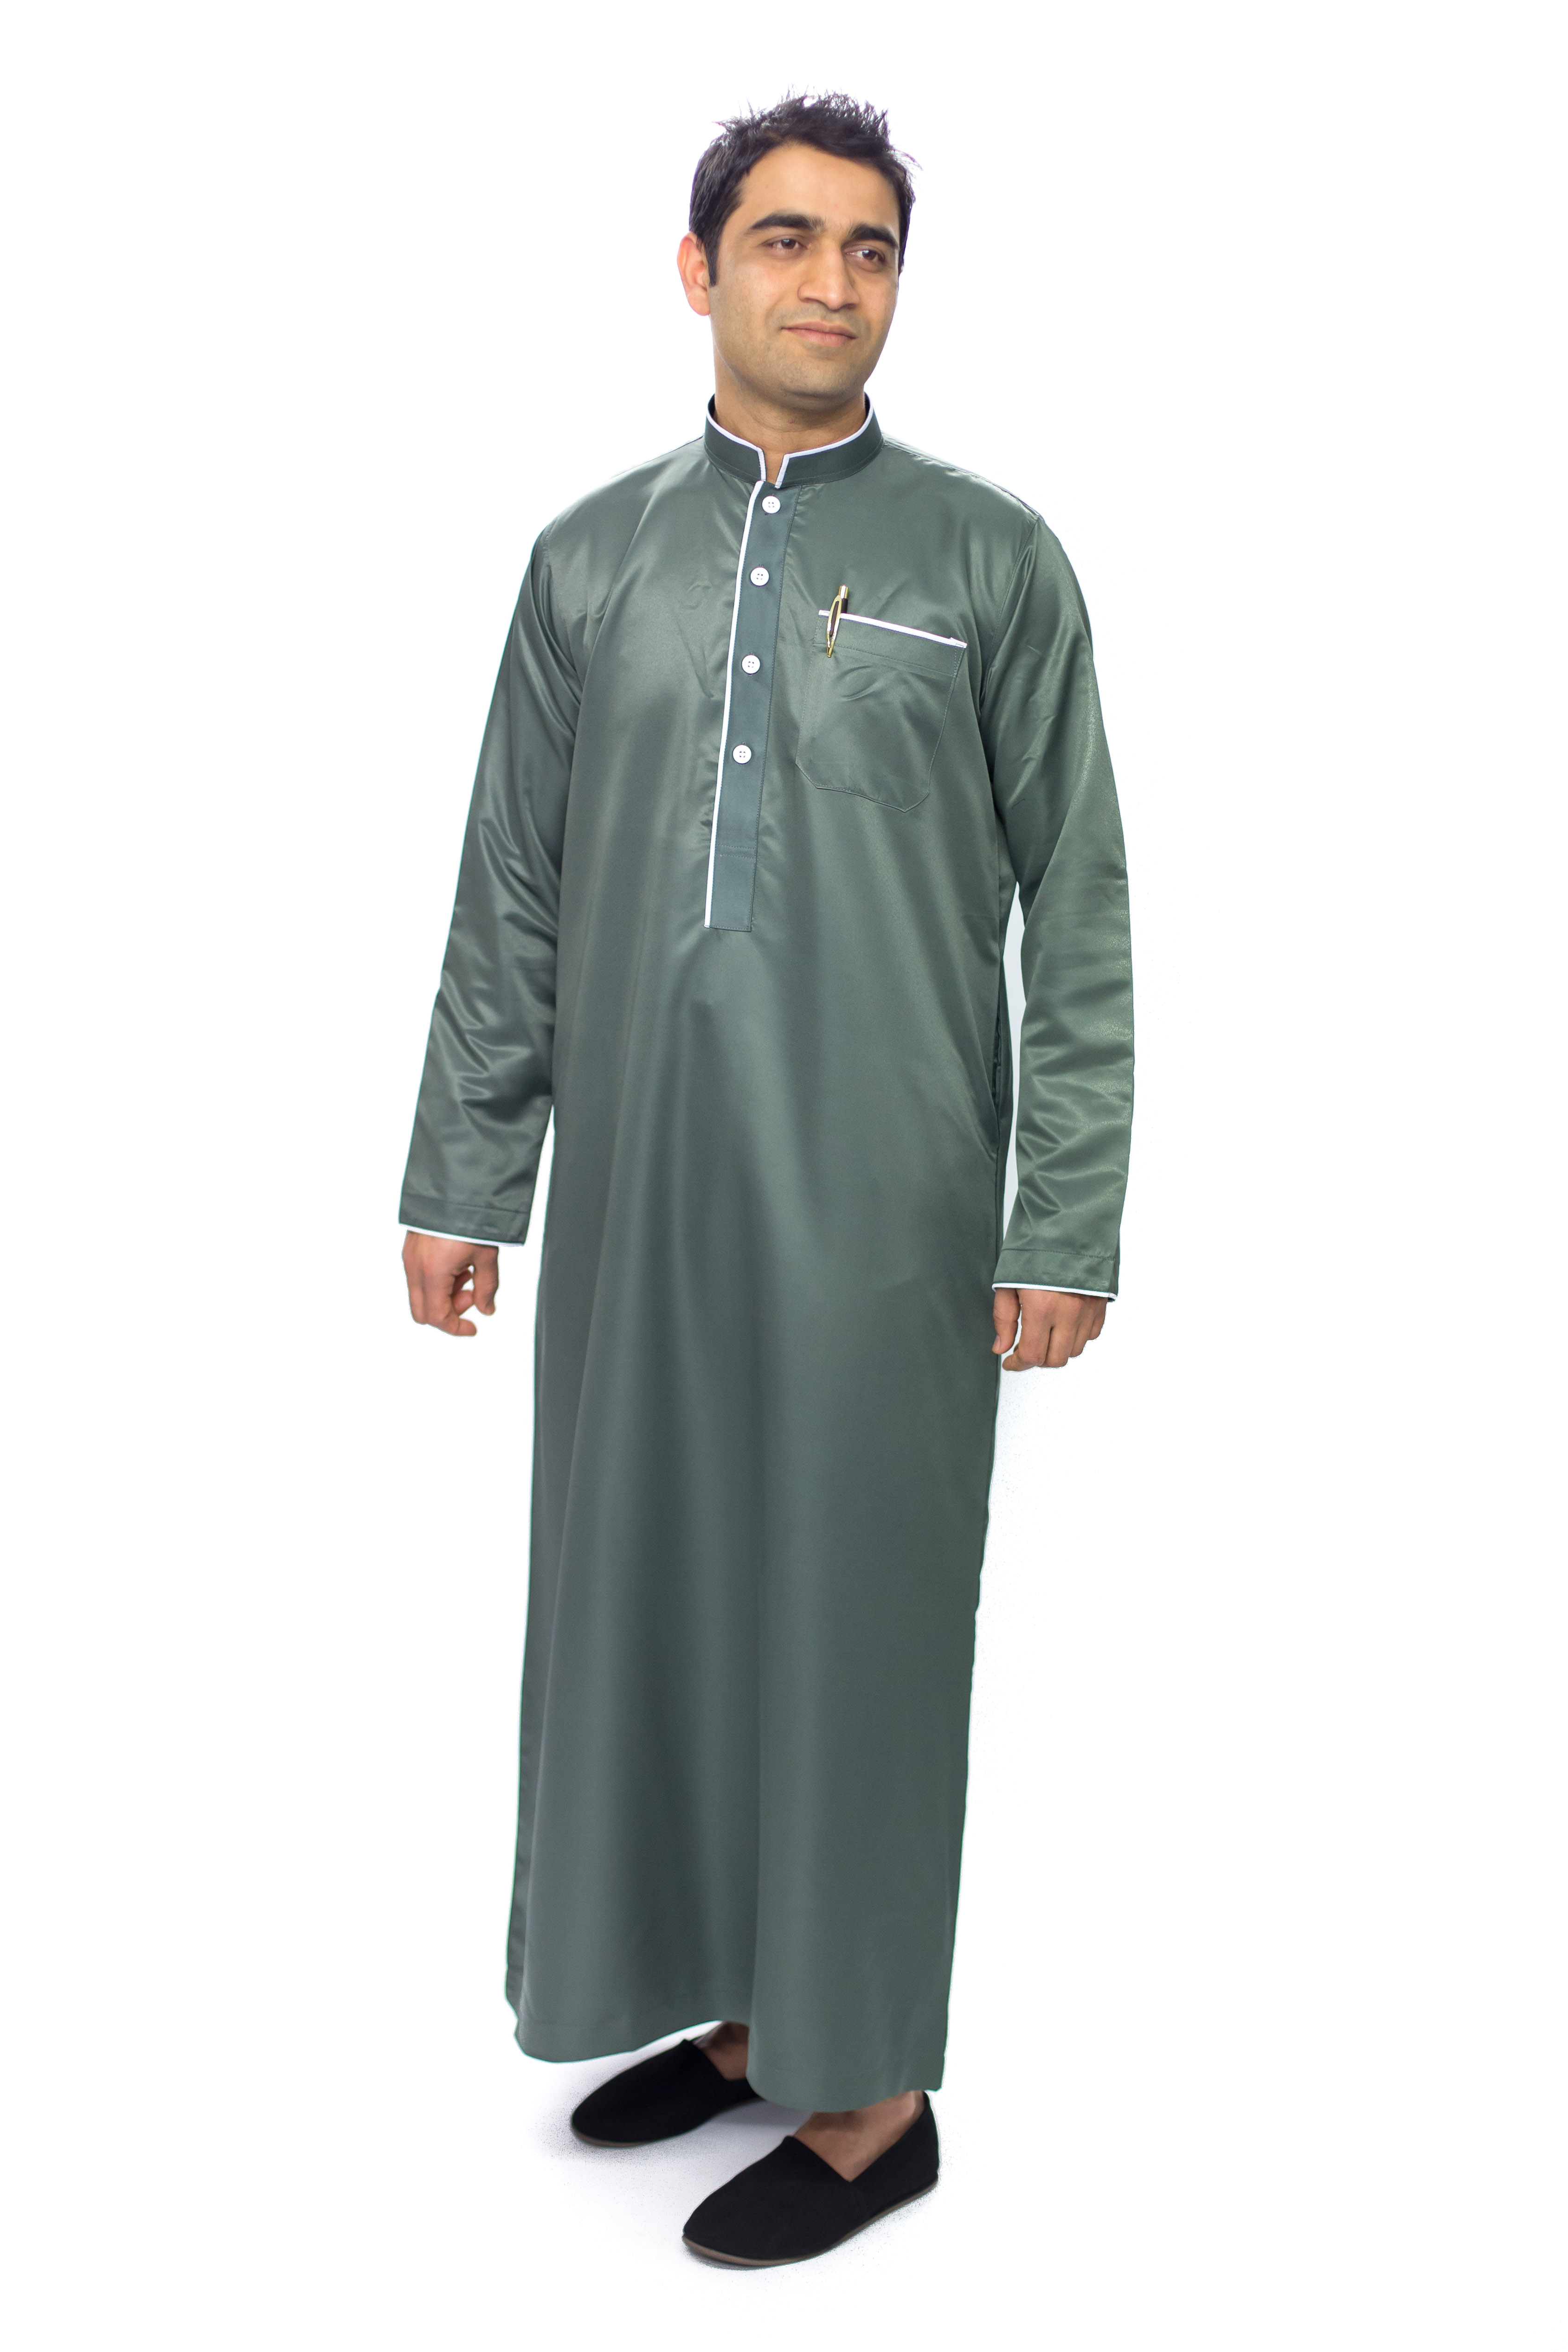 Dim Grey New Mens Pipping Jubba Thobe